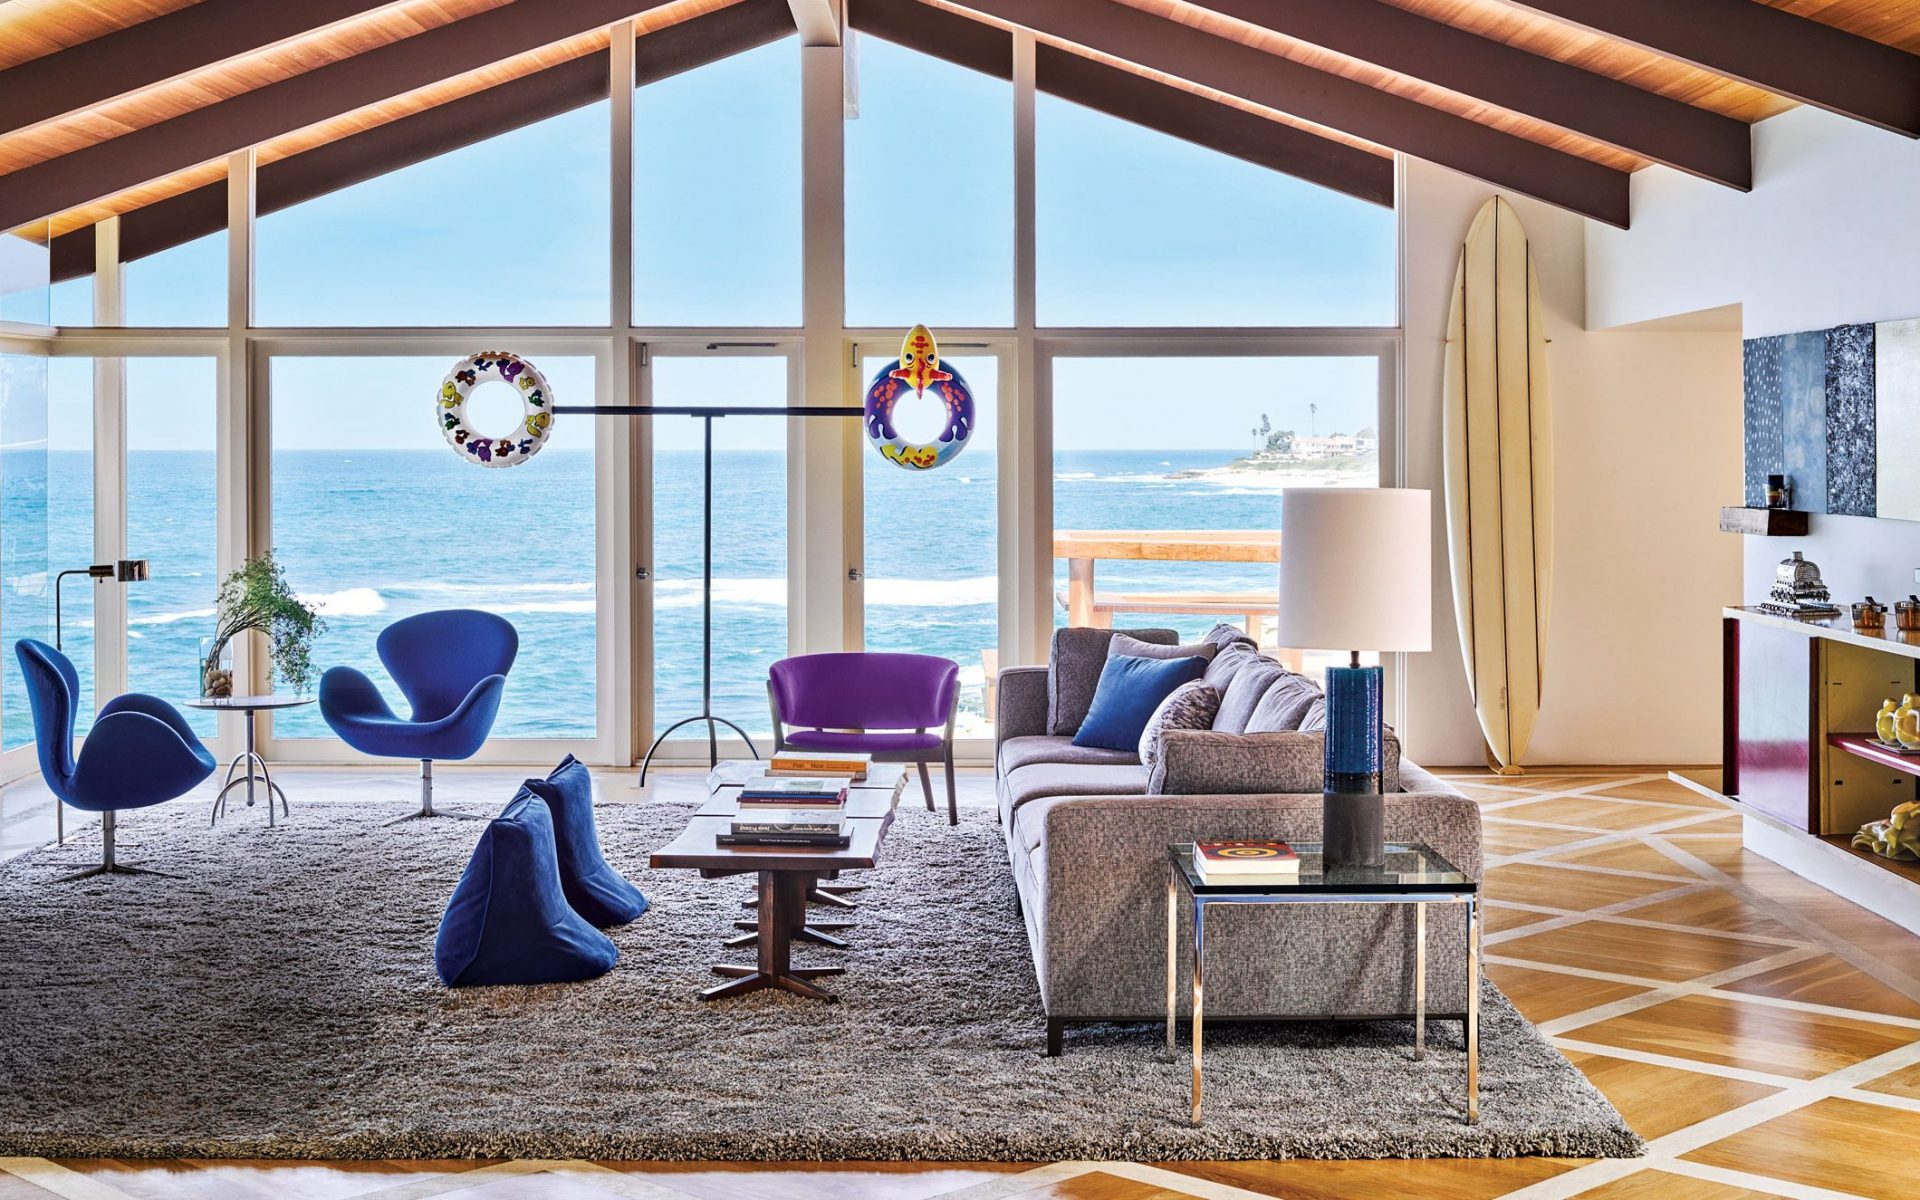 Artworks From The Sonnabend Collection Find A Home In A La Jolla Bungalow    Galerie